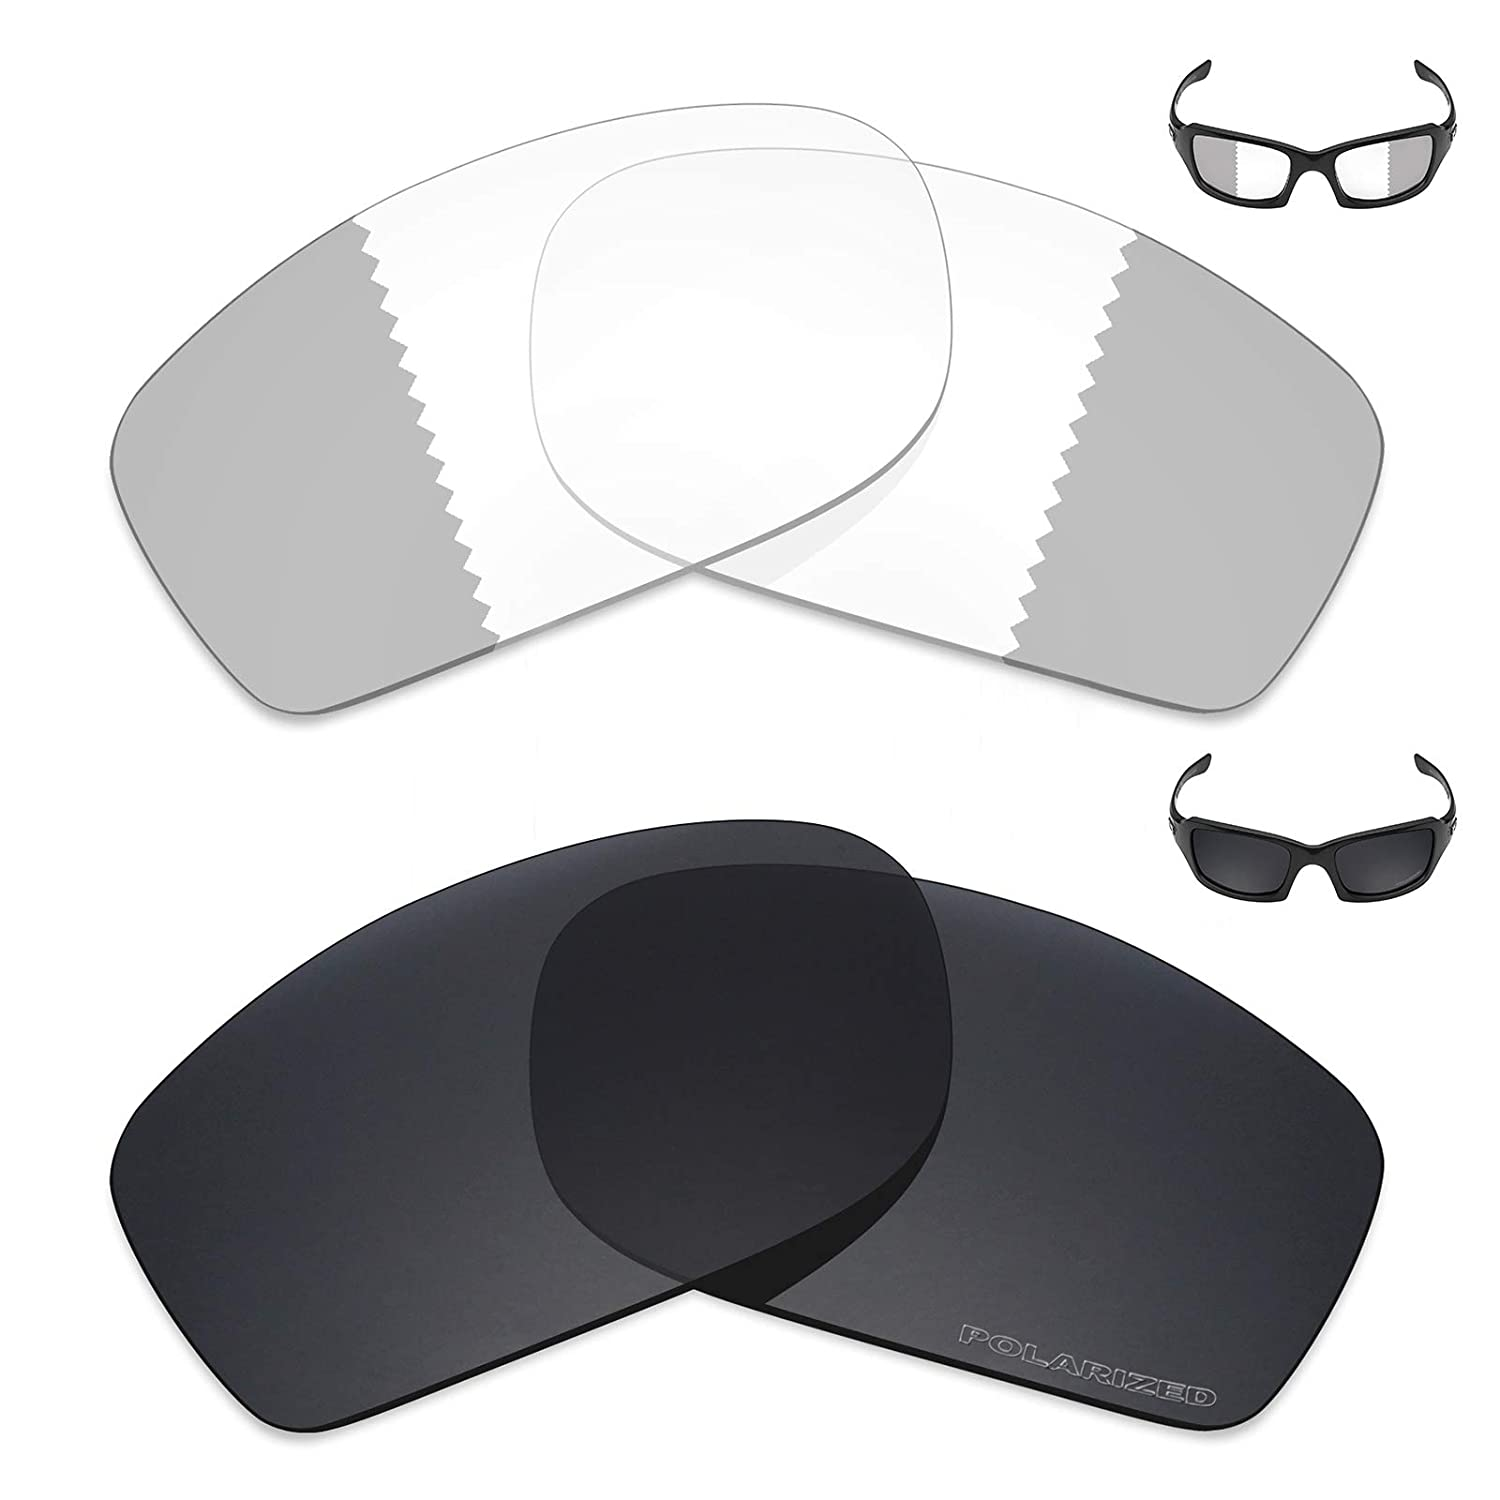 25abef1a8e4 Amazon.com  Mryok+ 2 Pair Replacement Lenses for Oakley Fives Squared  Sunglass - Eclipse Grey Photochromic Stealth Black  Sports   Outdoors